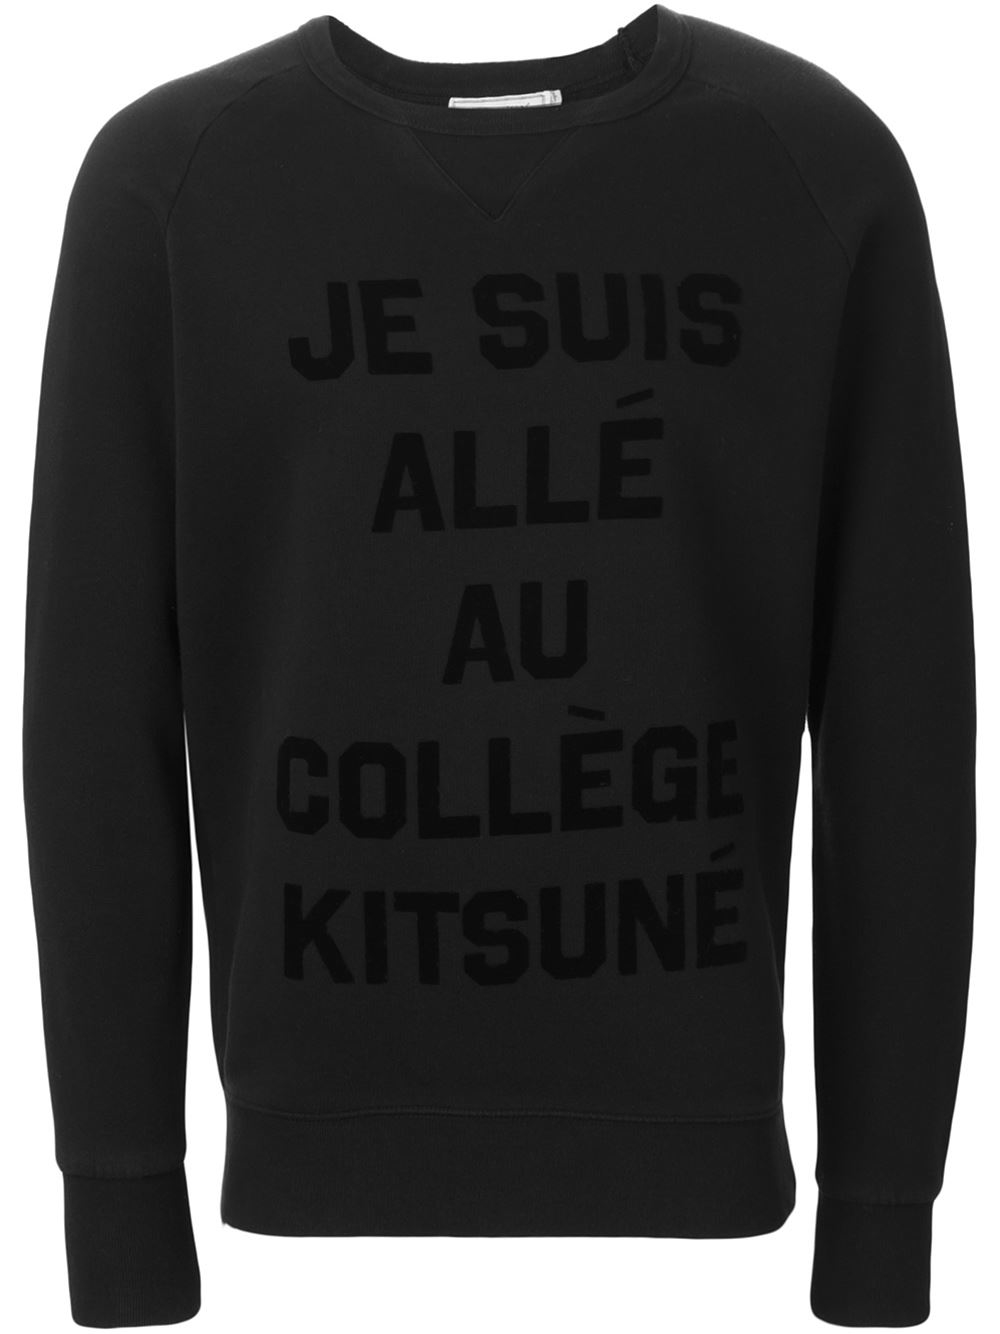 maison kitsun 39 je suis all au coll ge kitsun 39 sweatshirt in black for men lyst. Black Bedroom Furniture Sets. Home Design Ideas